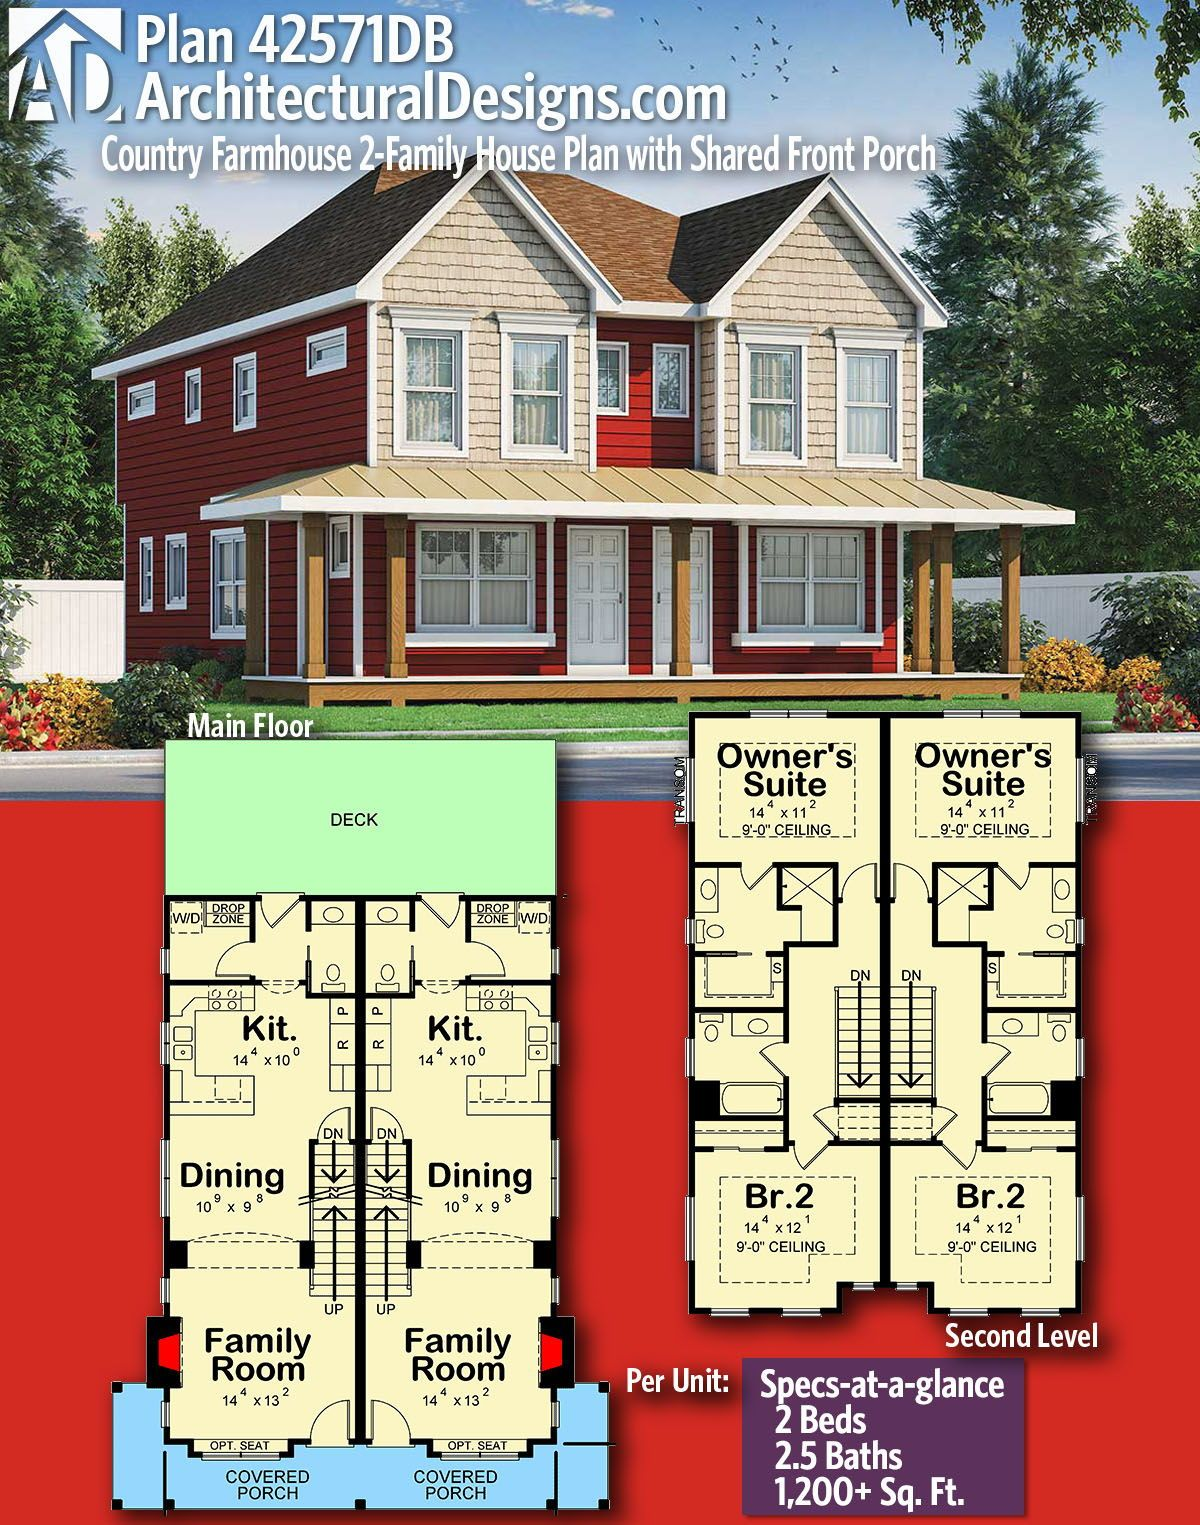 Plan 42571db Country Farmhouse 2 Family House Plan With Shared Front Porch In 2020 Family House Plans Small House Plans House Plans